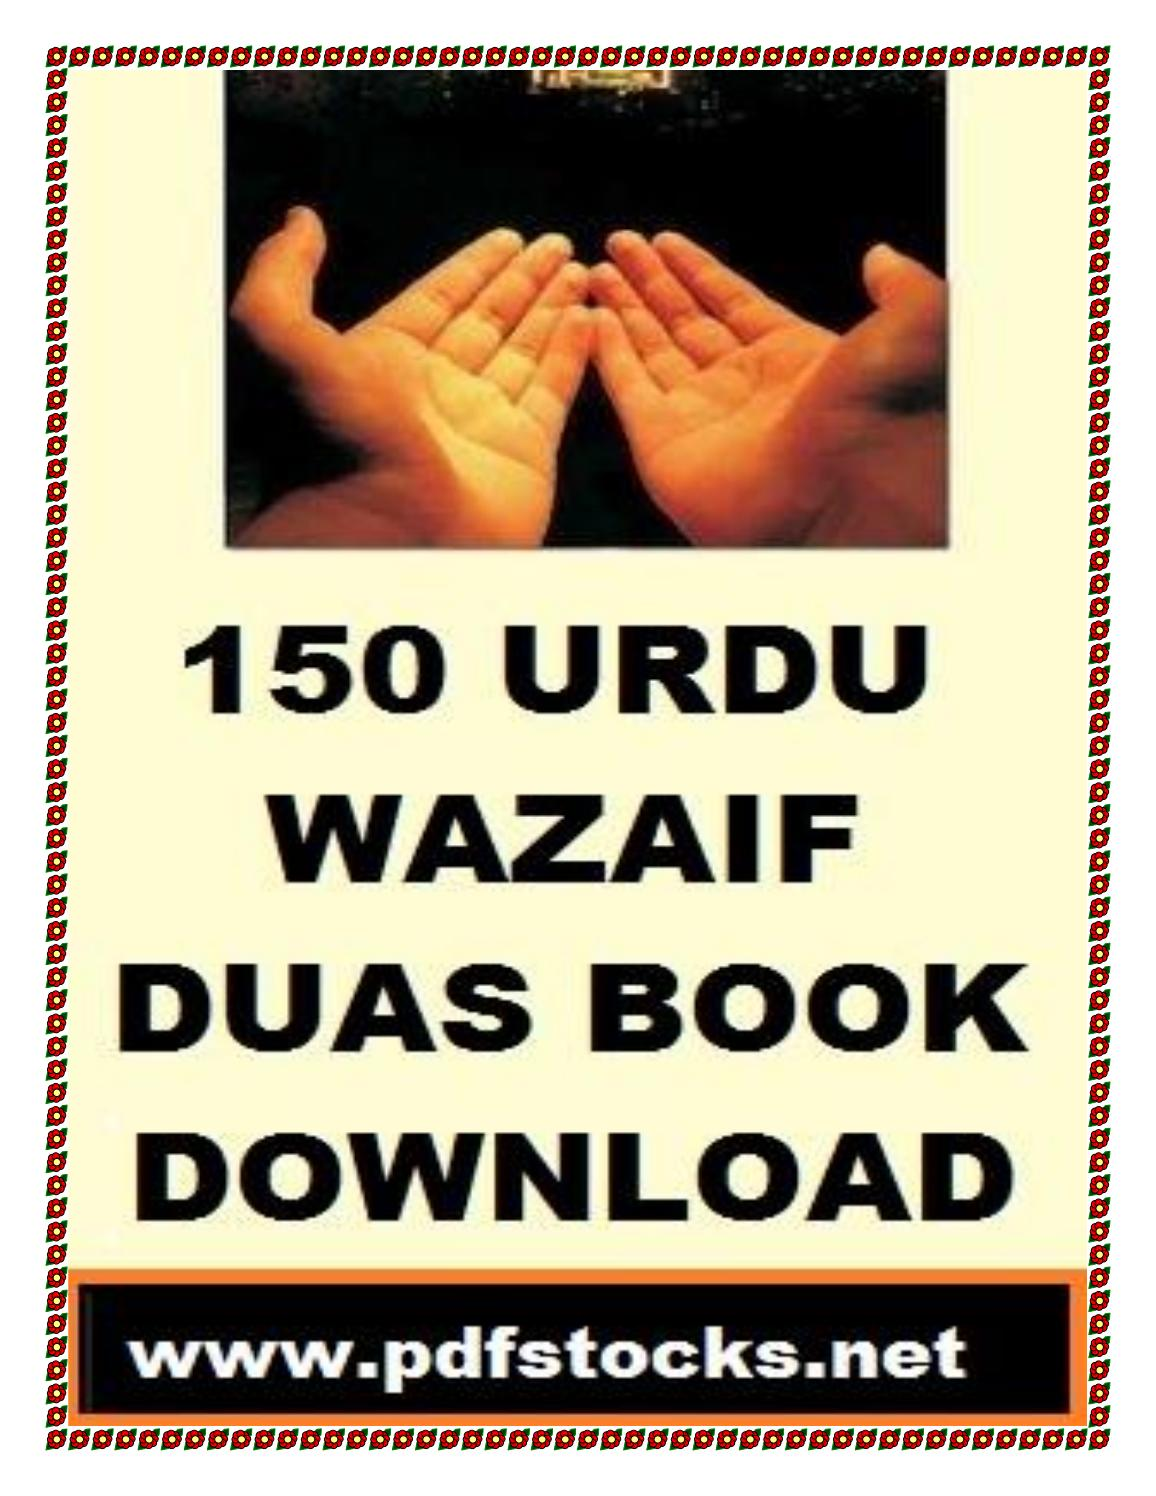 dua books pdf in urdu | dua and azkar books pdf | masnoon